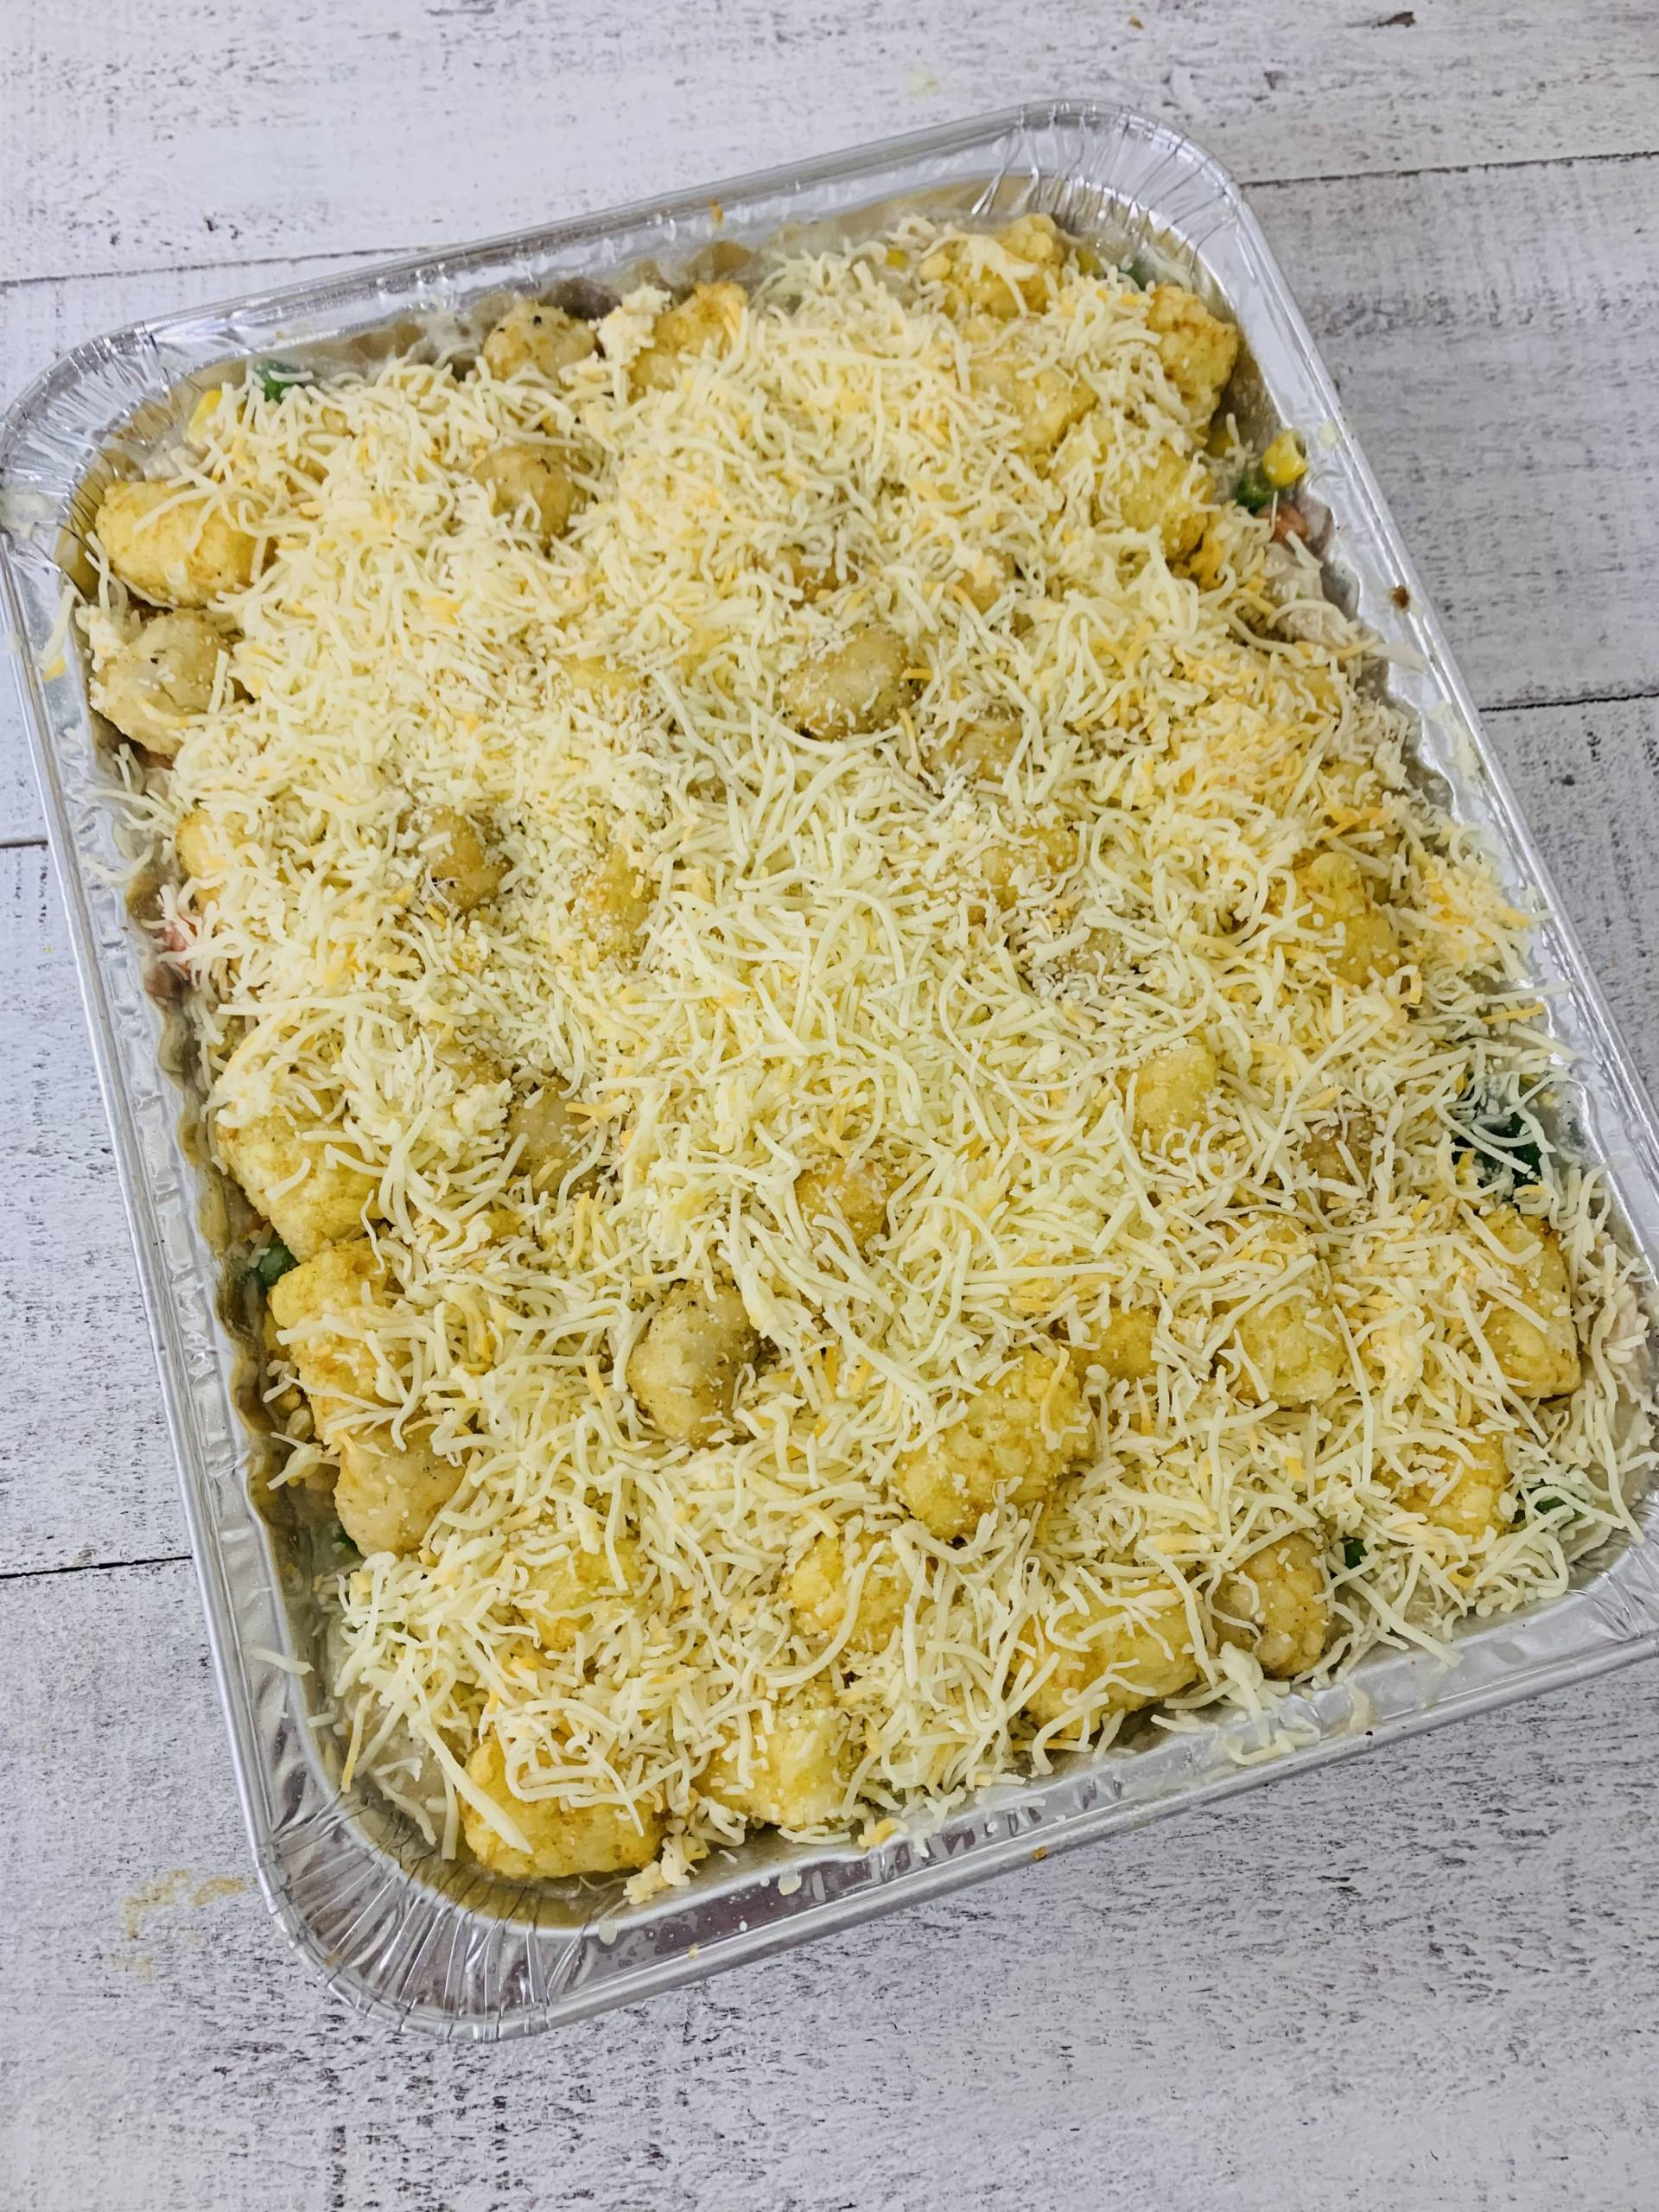 Tater Tot Casserole Chicken Family Meal (Feeds 6-8)